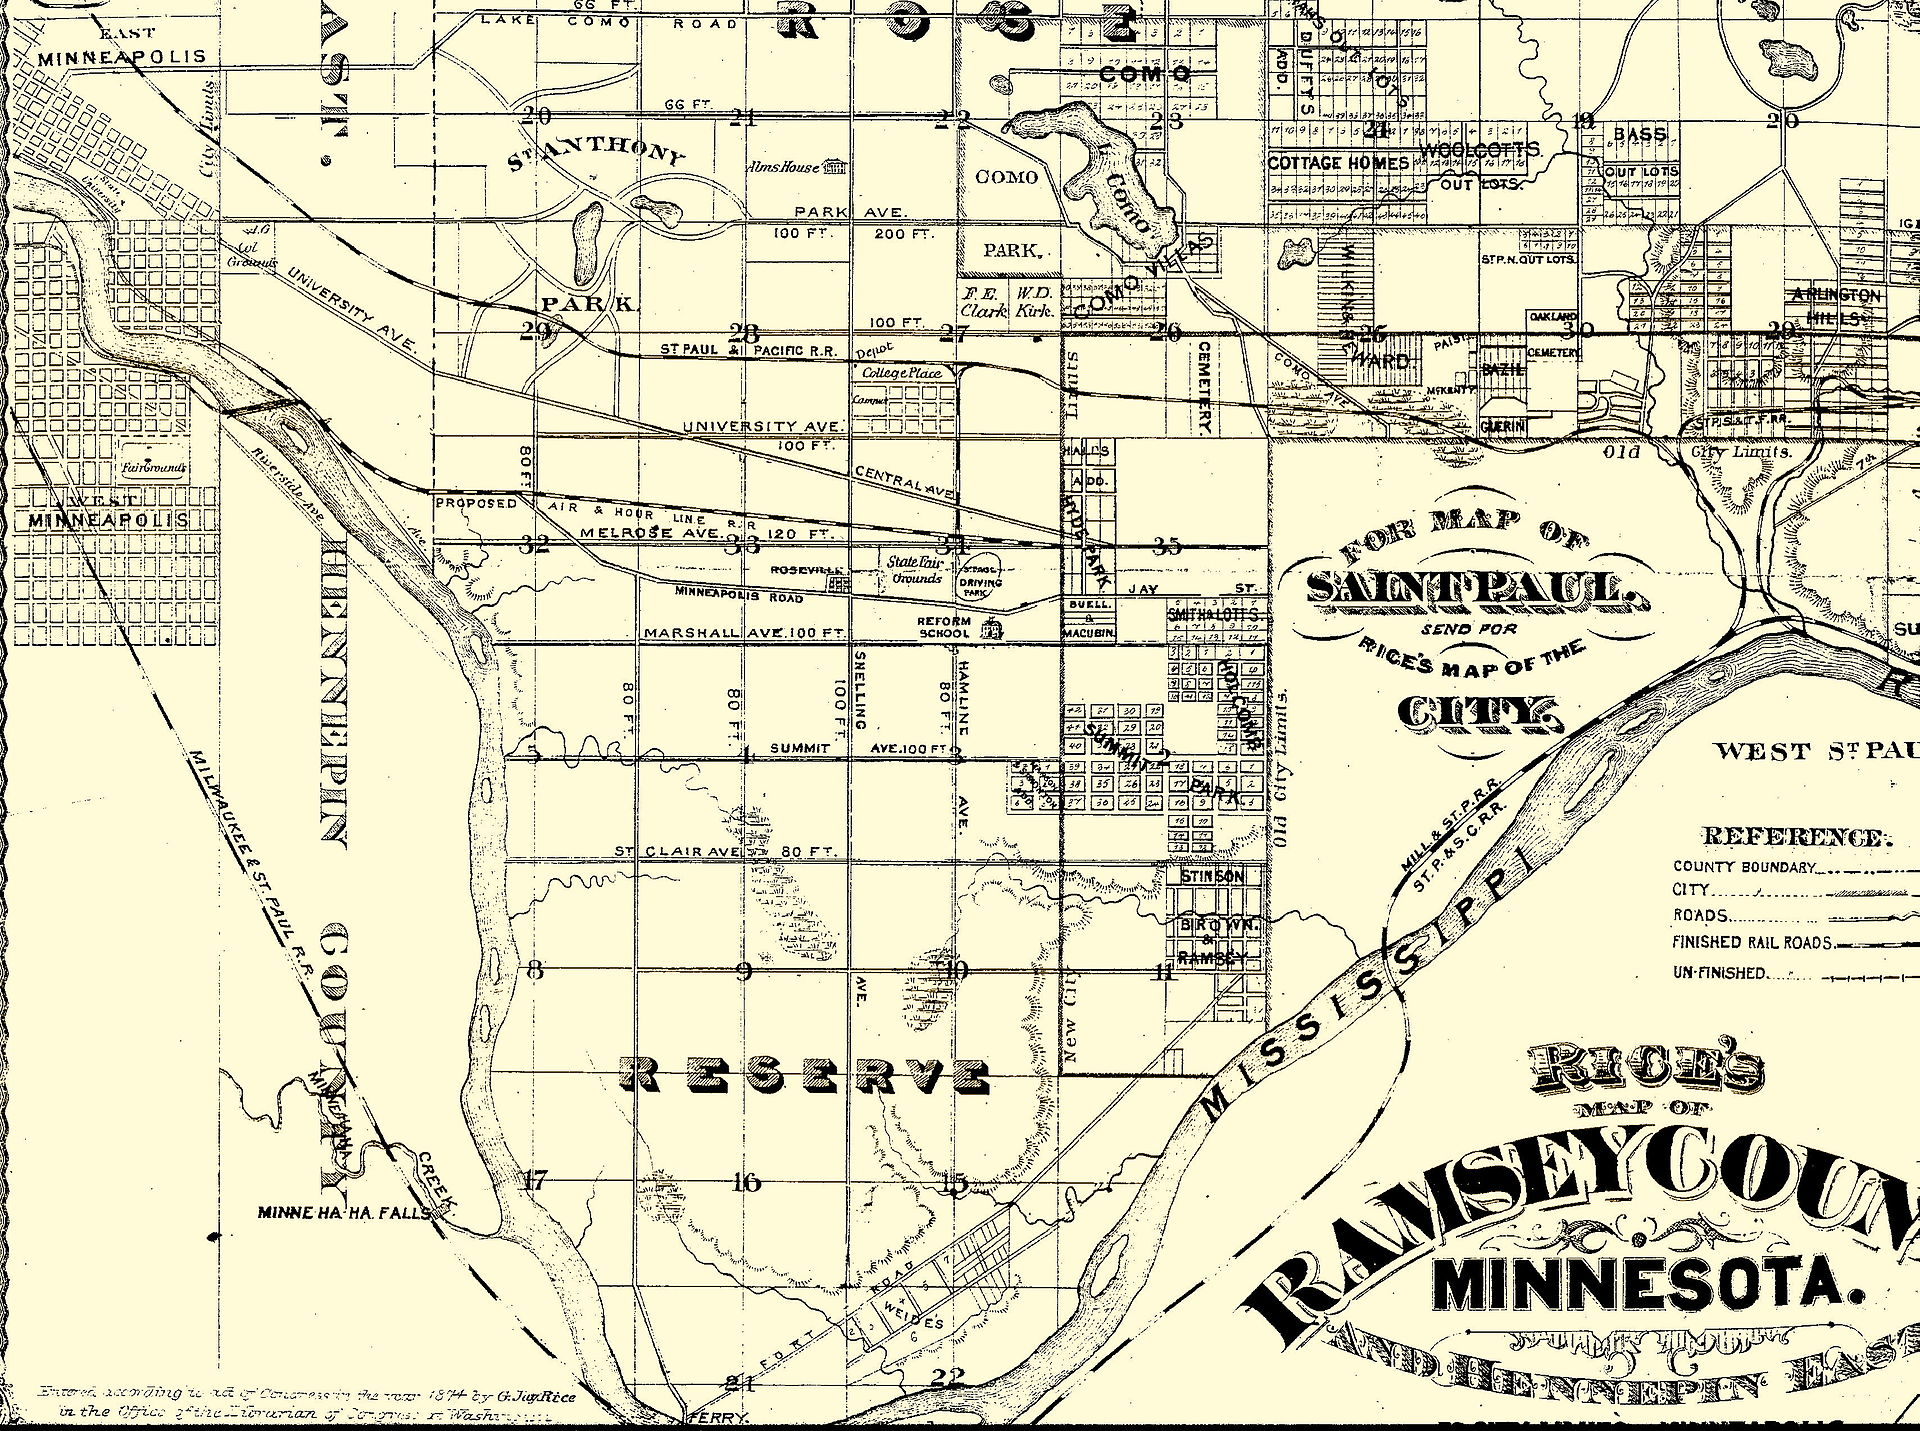 1920px-Saint_Paul_Rice%27s_Map_1874 Mn State Fairgrounds Map on mn valley fair map, bethel college map, valley fair amusement park map, mystic lake casino map, macalester college map, mall of america map, mn state fairgrounds entrances, metrodome map, downtown minneapolis map, target center map, university of minnesota map, mn zoo map, hazeltine golf course map,